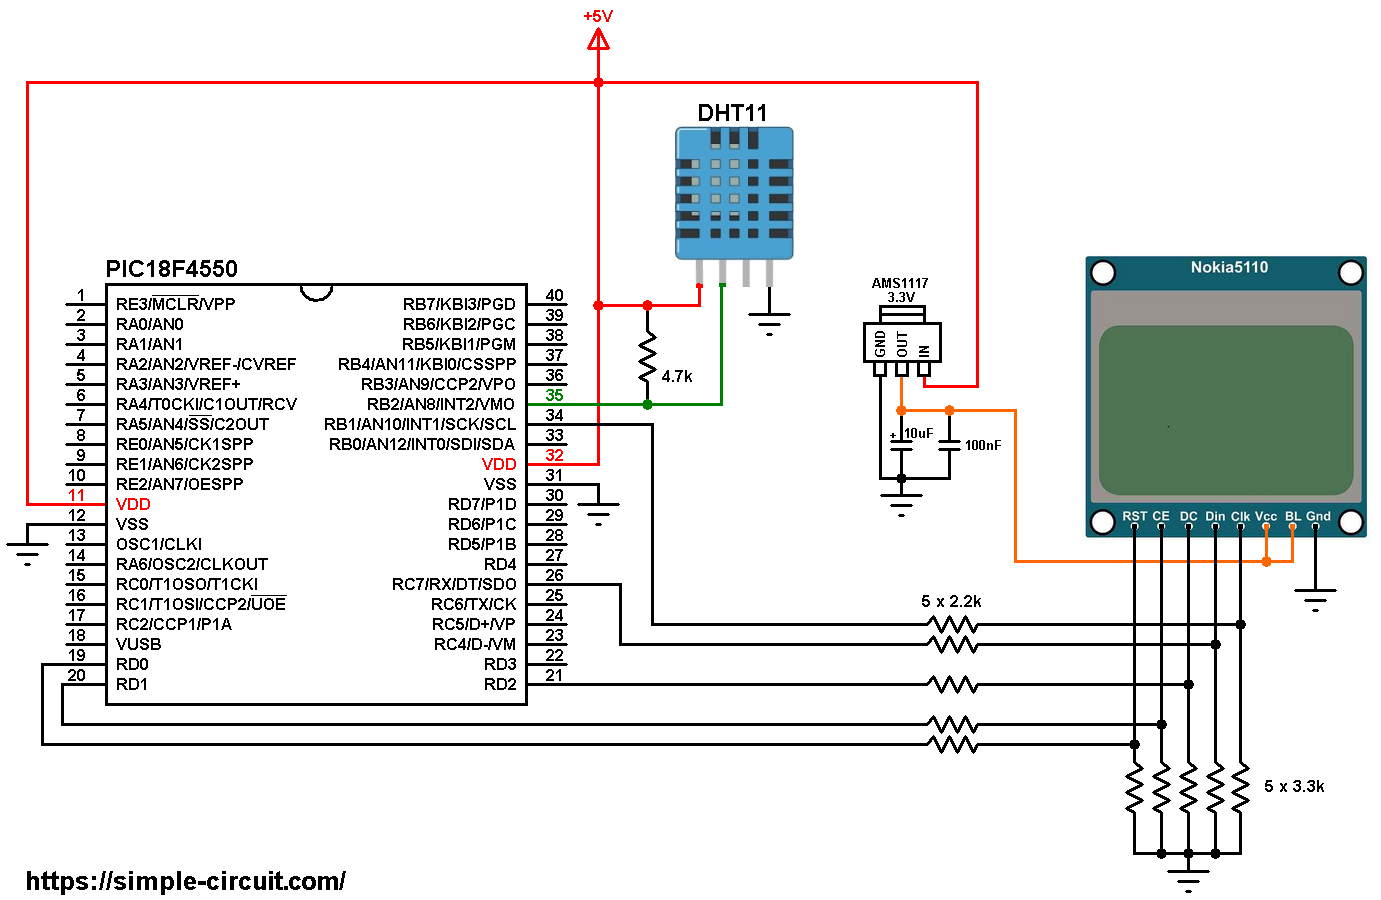 Pic18f4550 Interface With Dht11 Sensor And Nokia 5110 Lcd